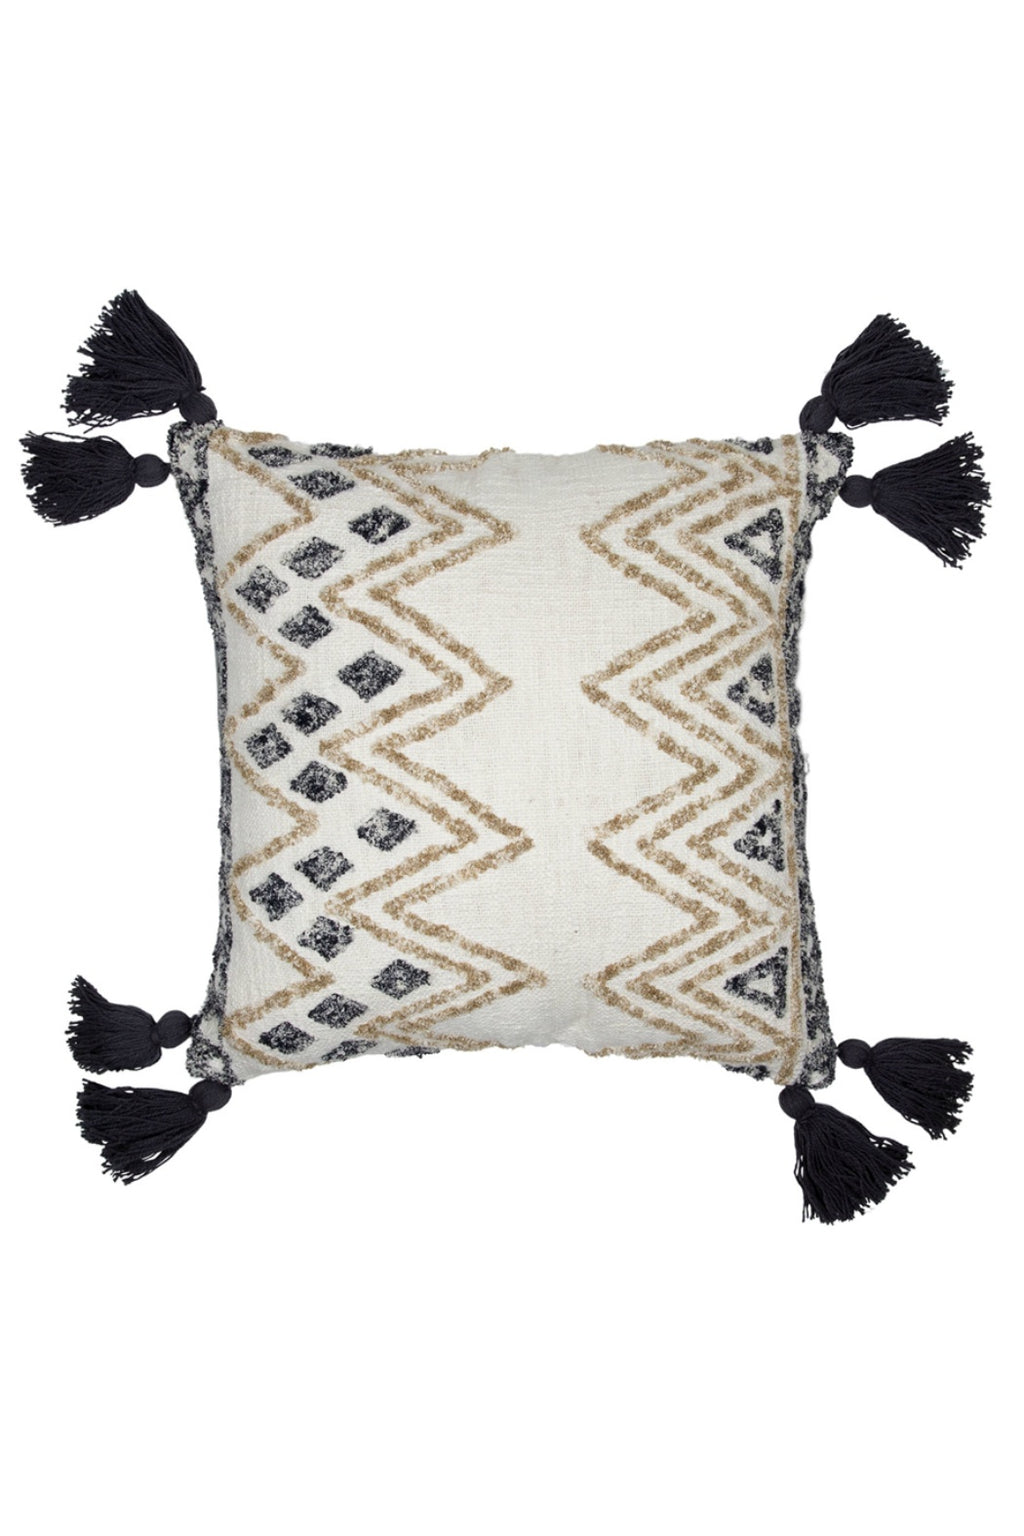 Foreside Hand-Woven Hendry Pillow